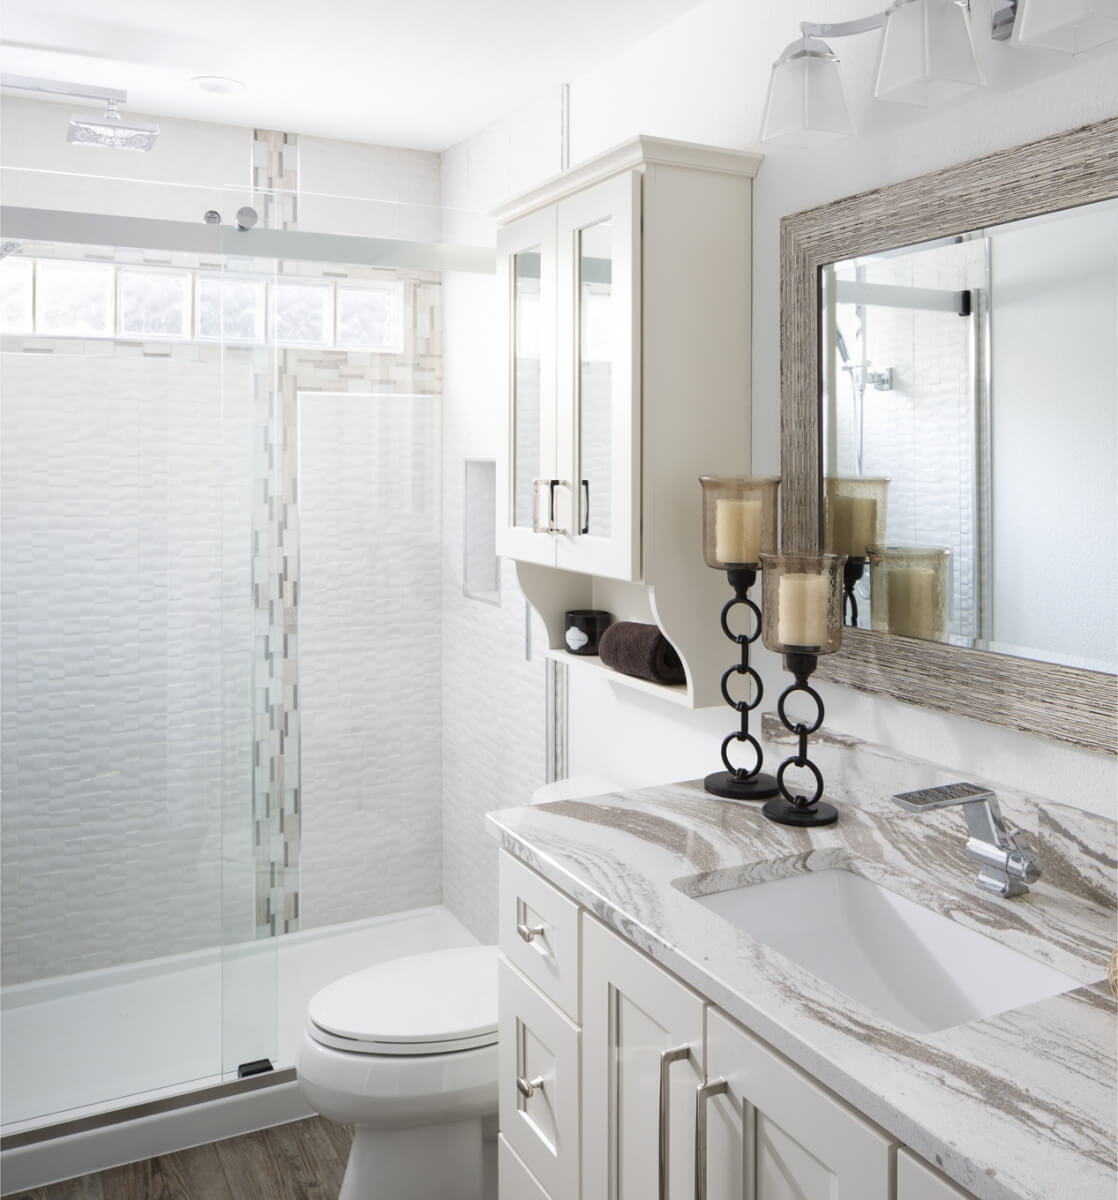 The small cabinet above the toilet in this bathroom uses mirror to help reflect more light from the small bathroom window throughout the space. Dura Supreme design by Gwen Adair of Cabinet Supreme by Adair, Wisconsin. Photography by Ryan Hainey.